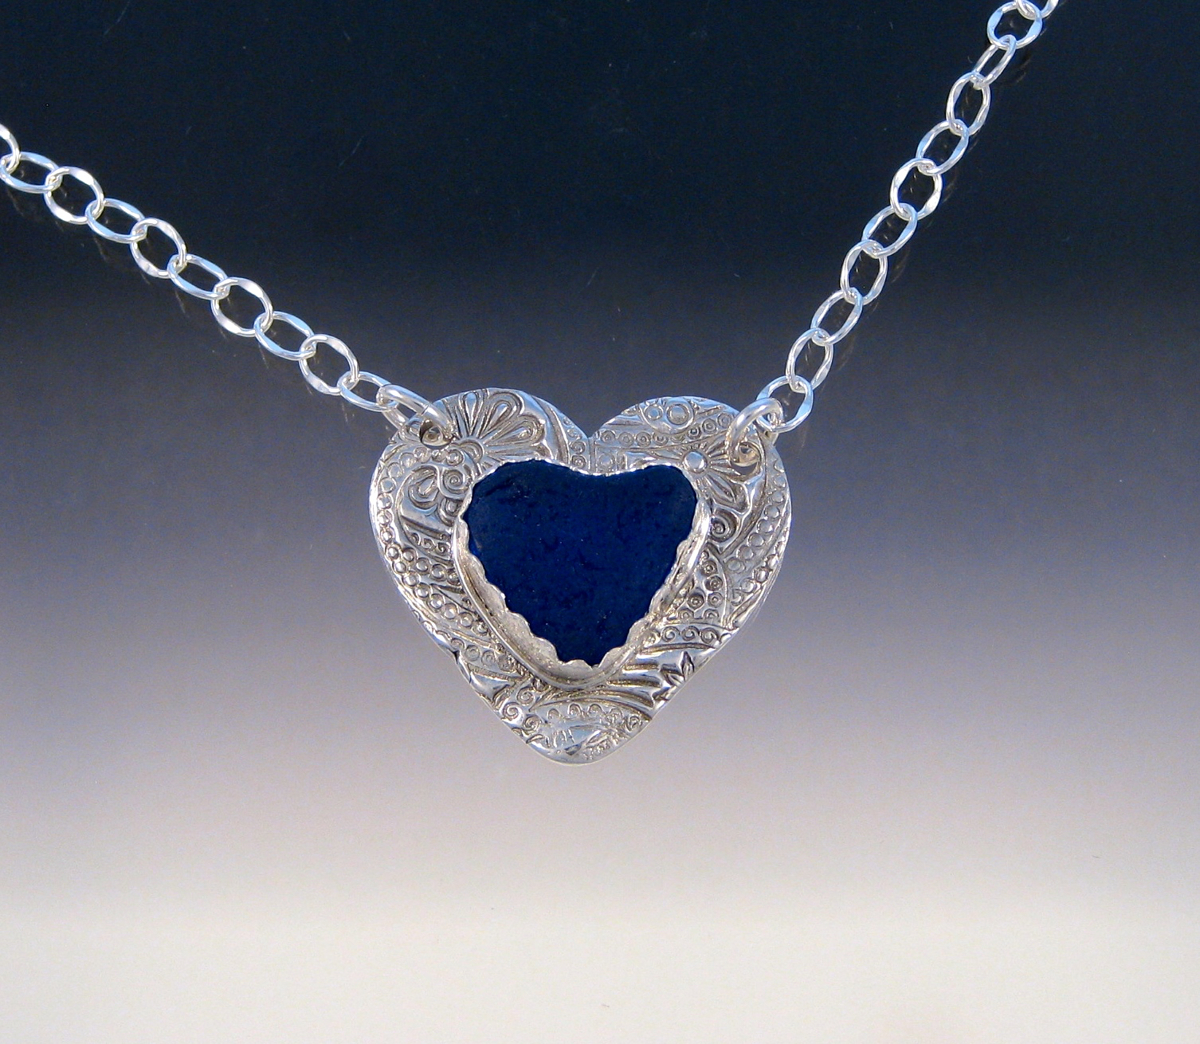 P5433 - Cobalt sea glass heart in heart necklace (large view)